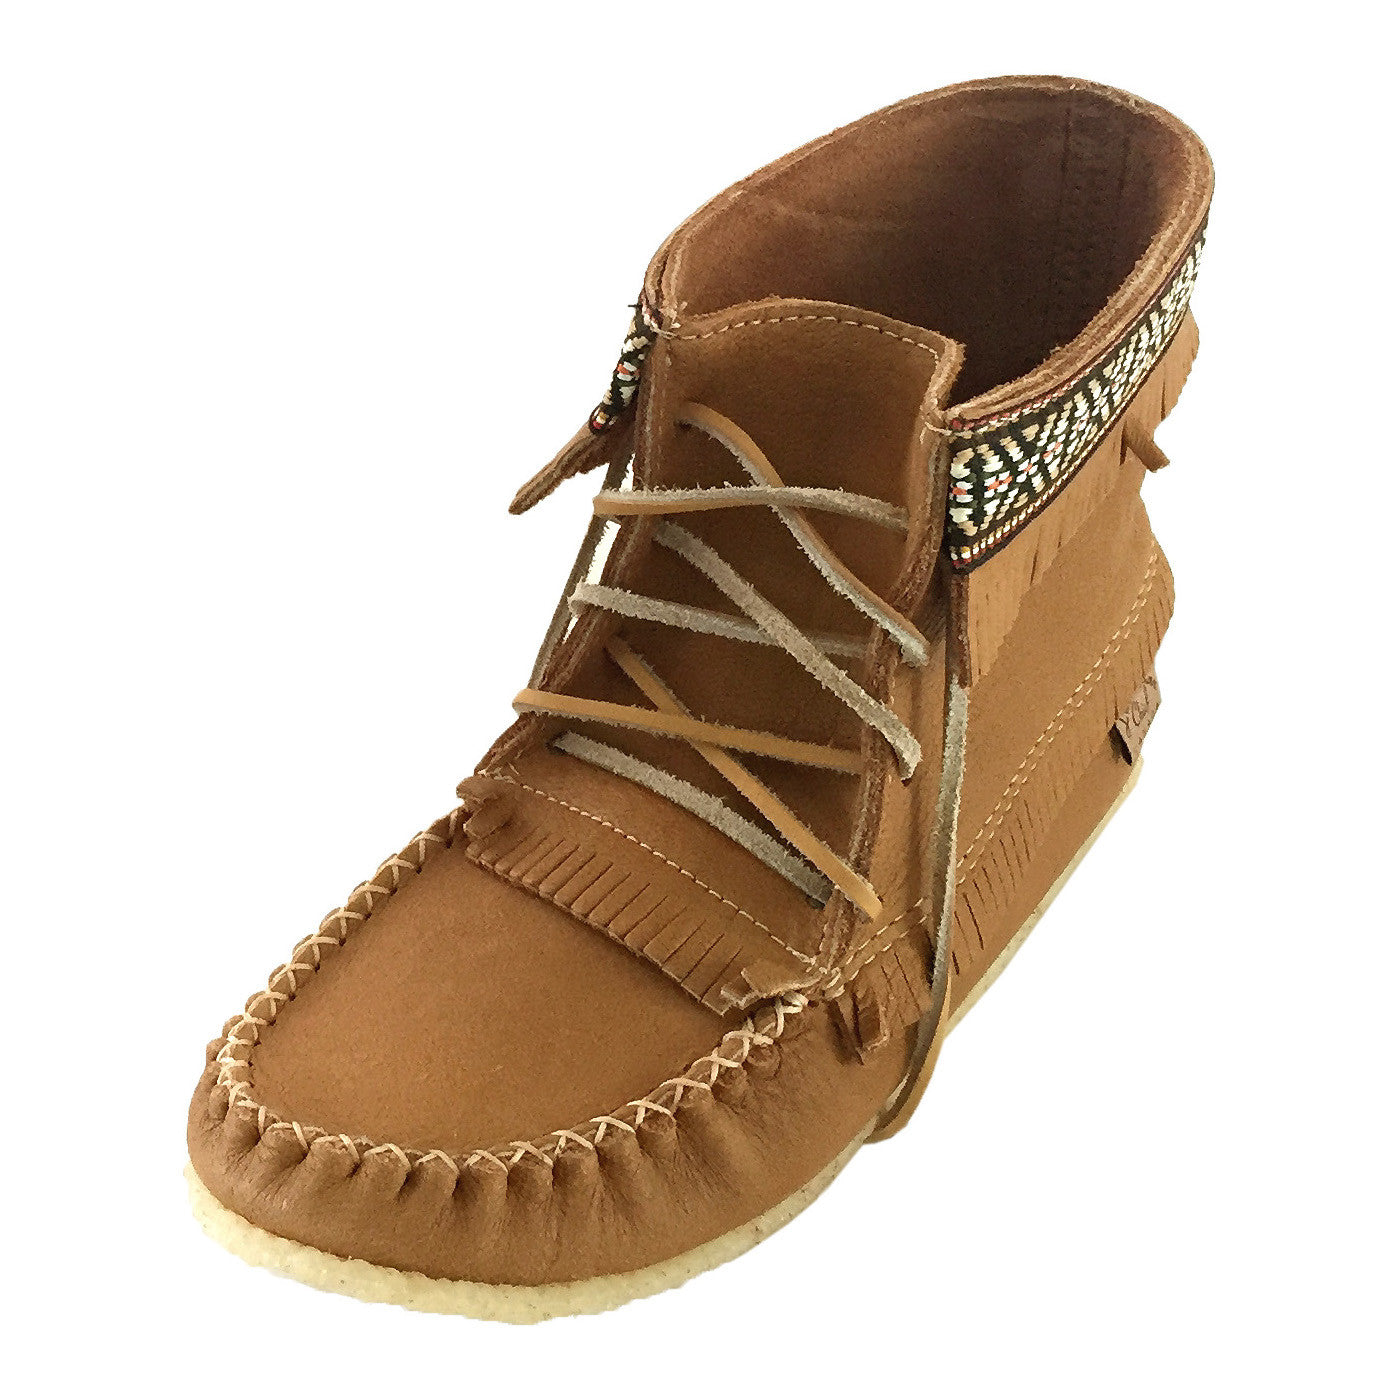 Moosehide Leather Moccasin Boots